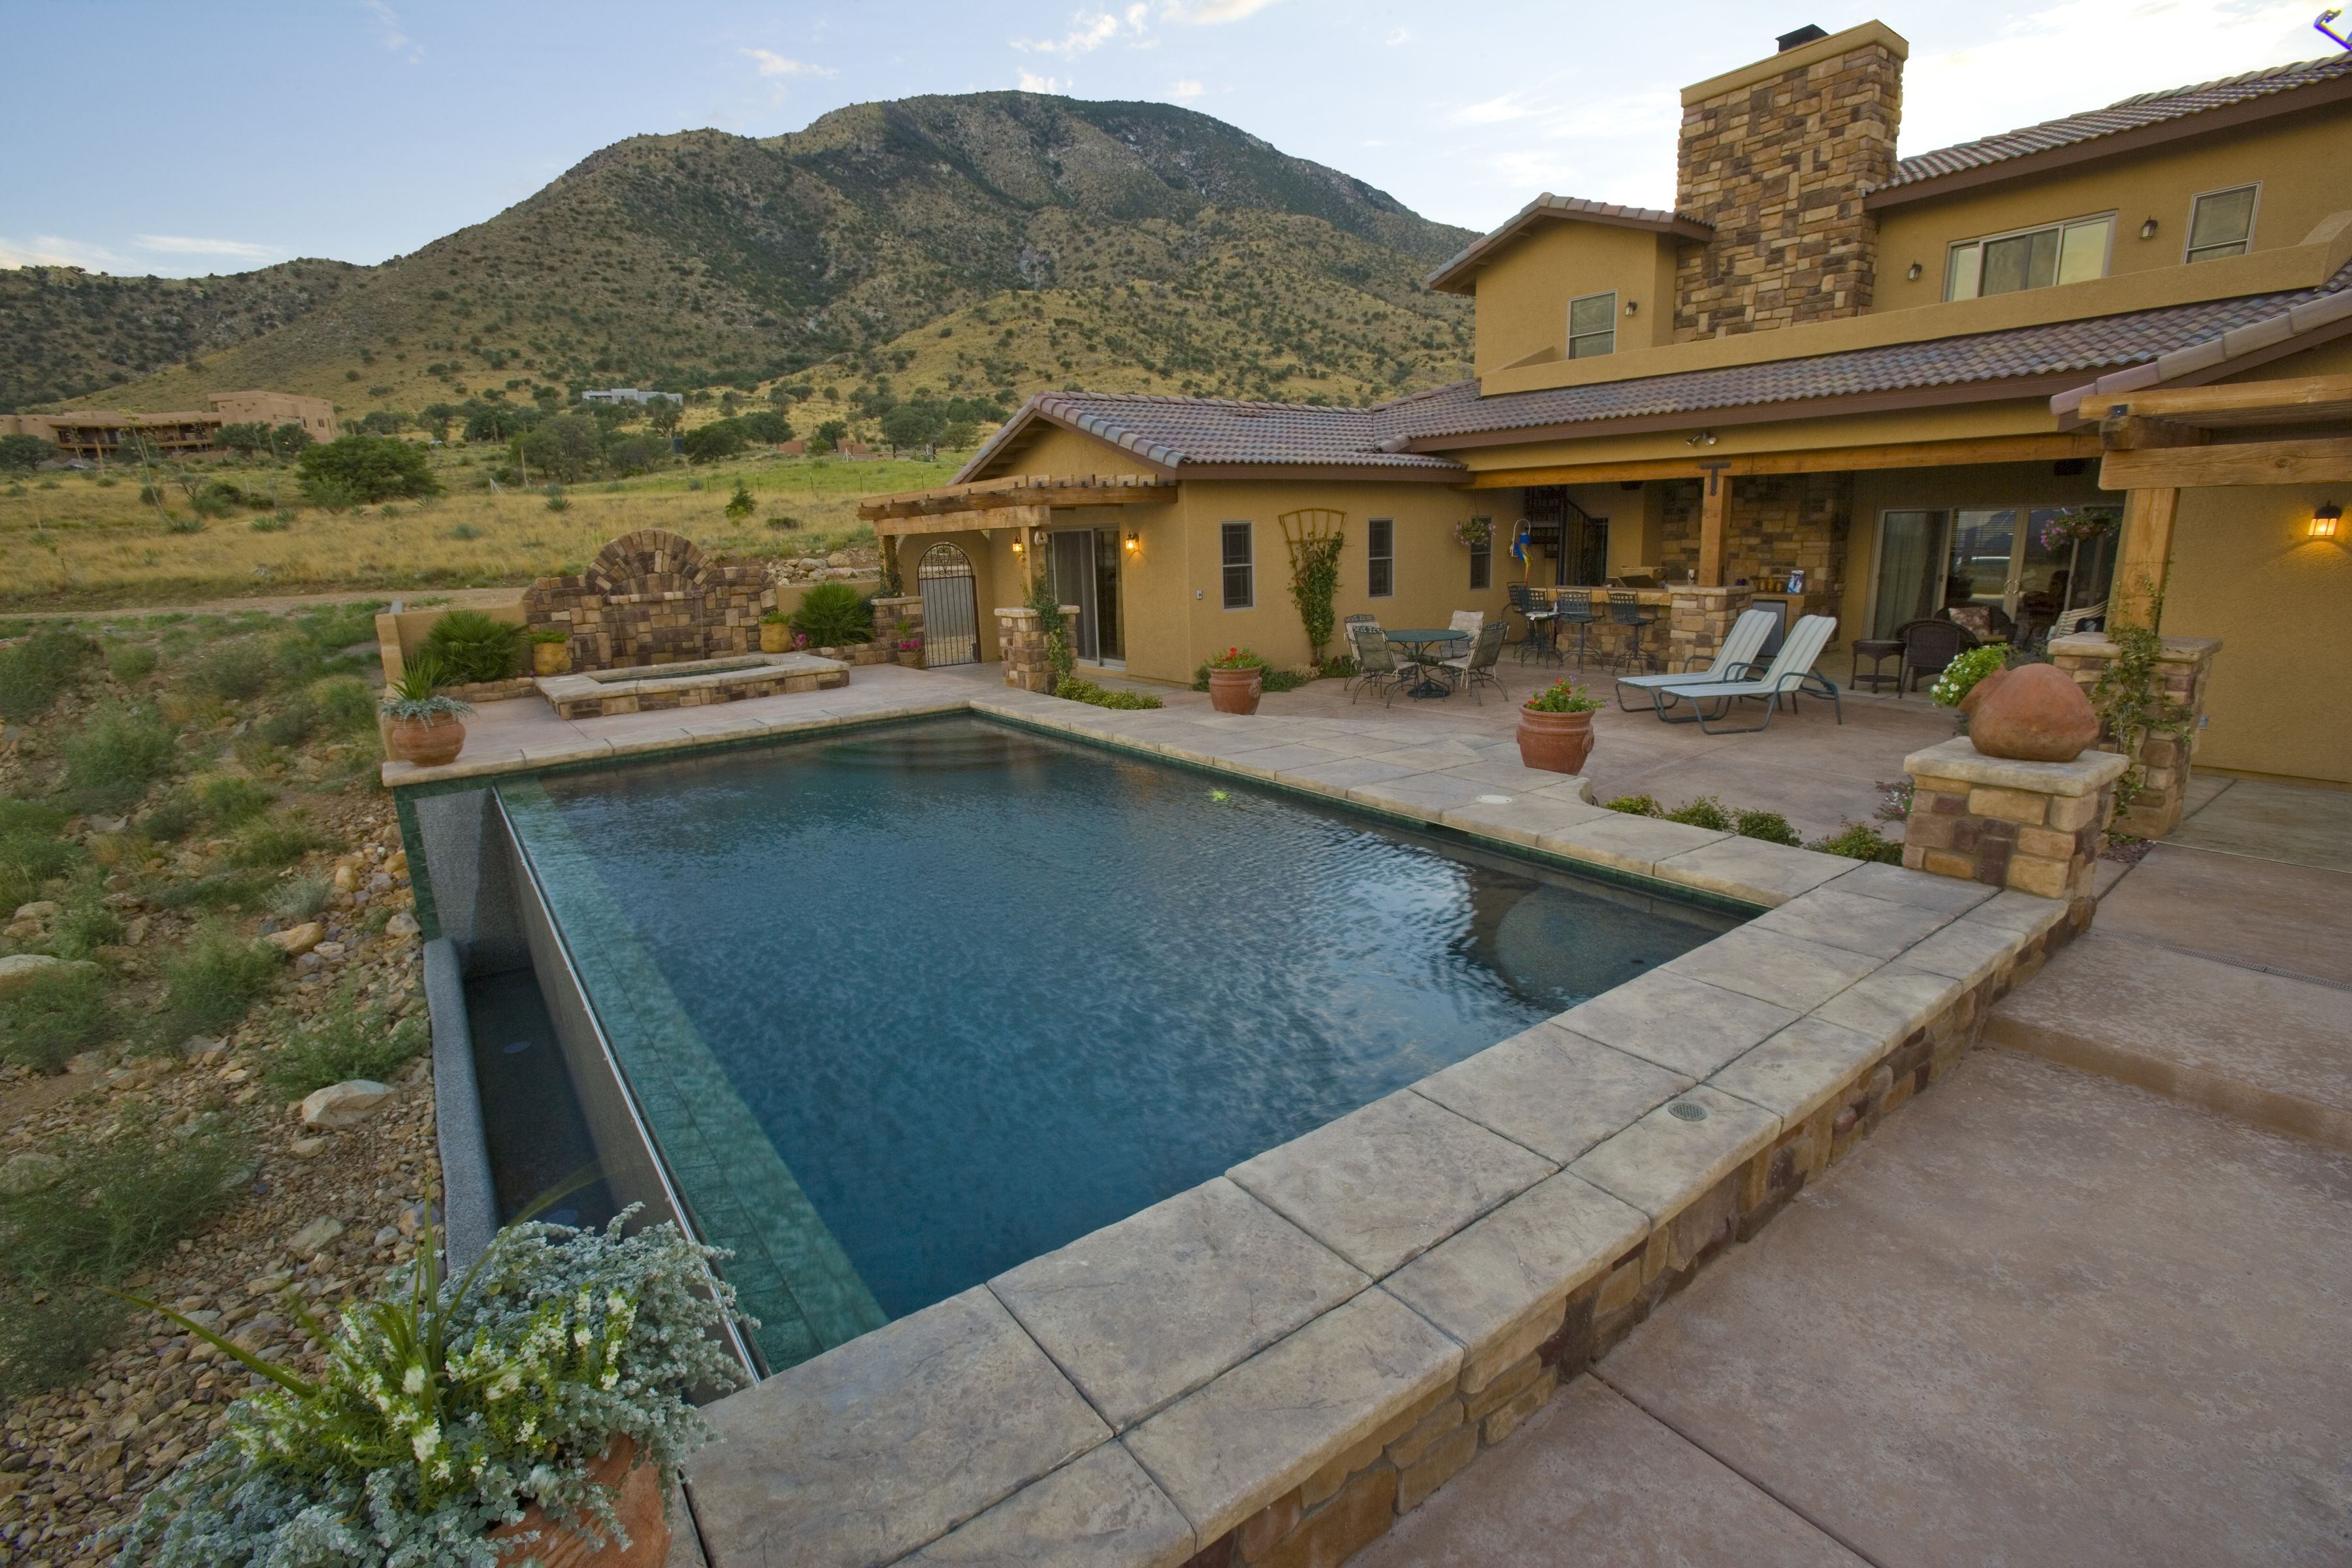 Tradition Pool By Patio Pools And Spas.